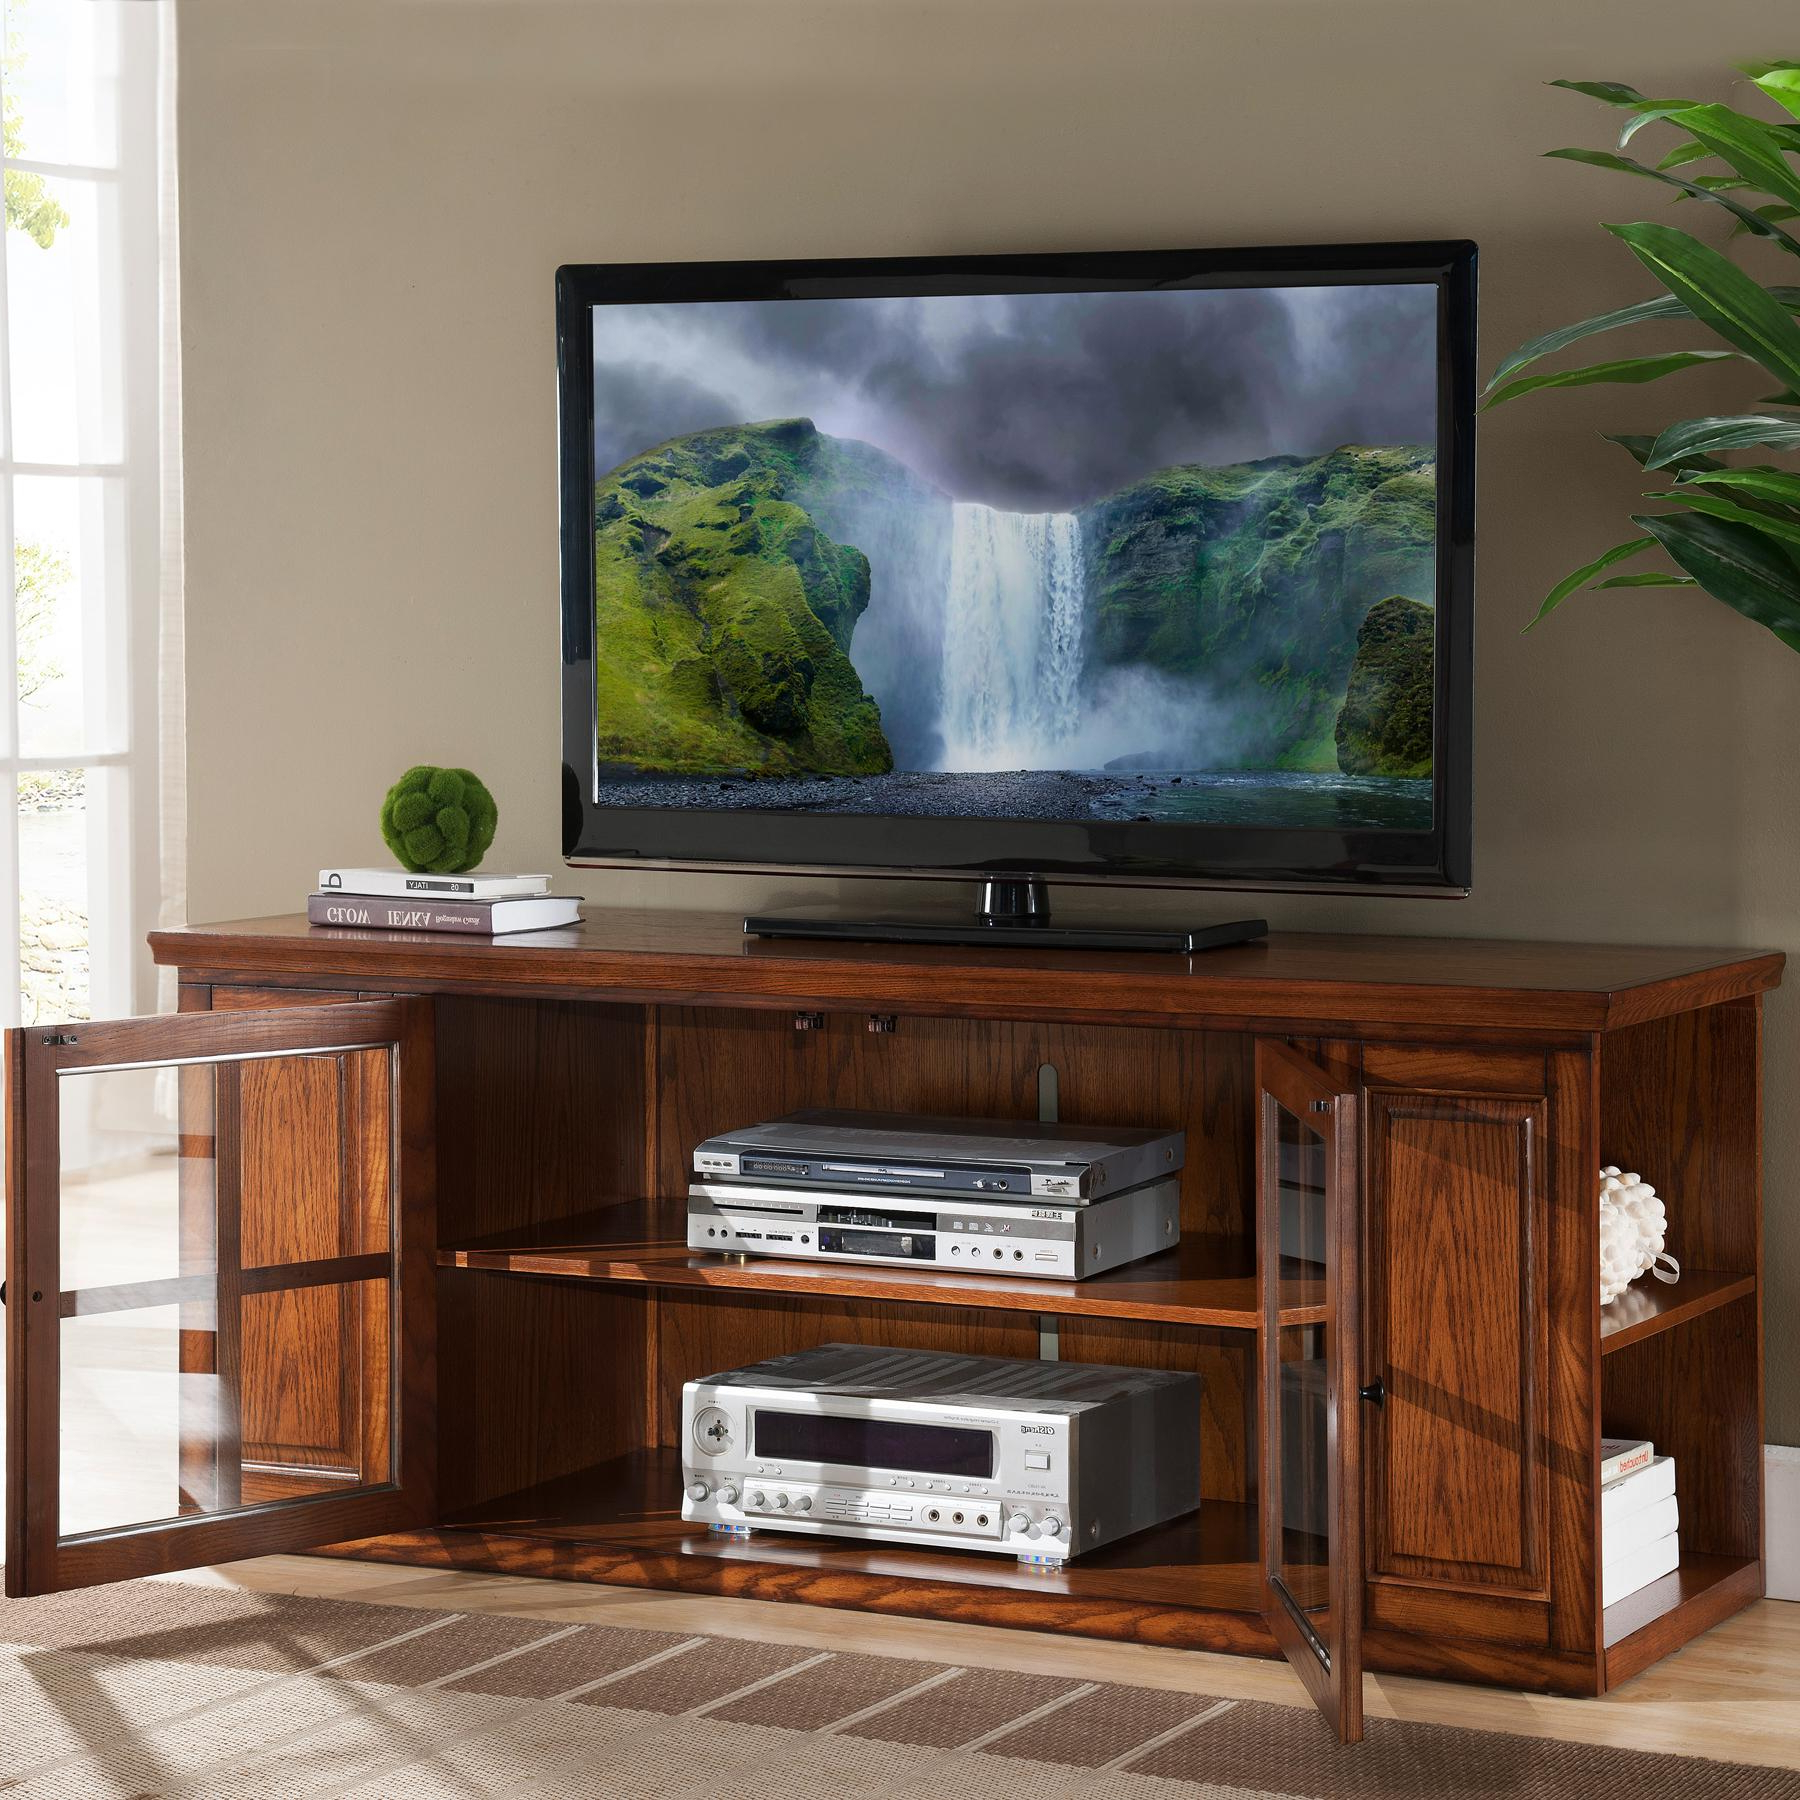 Edwin Black 64 Inch Tv Stands With Regard To Famous Amazon: Leick Riley Holliday Tv Stand, 62 Inch, Burnished Oak (Gallery 19 of 20)